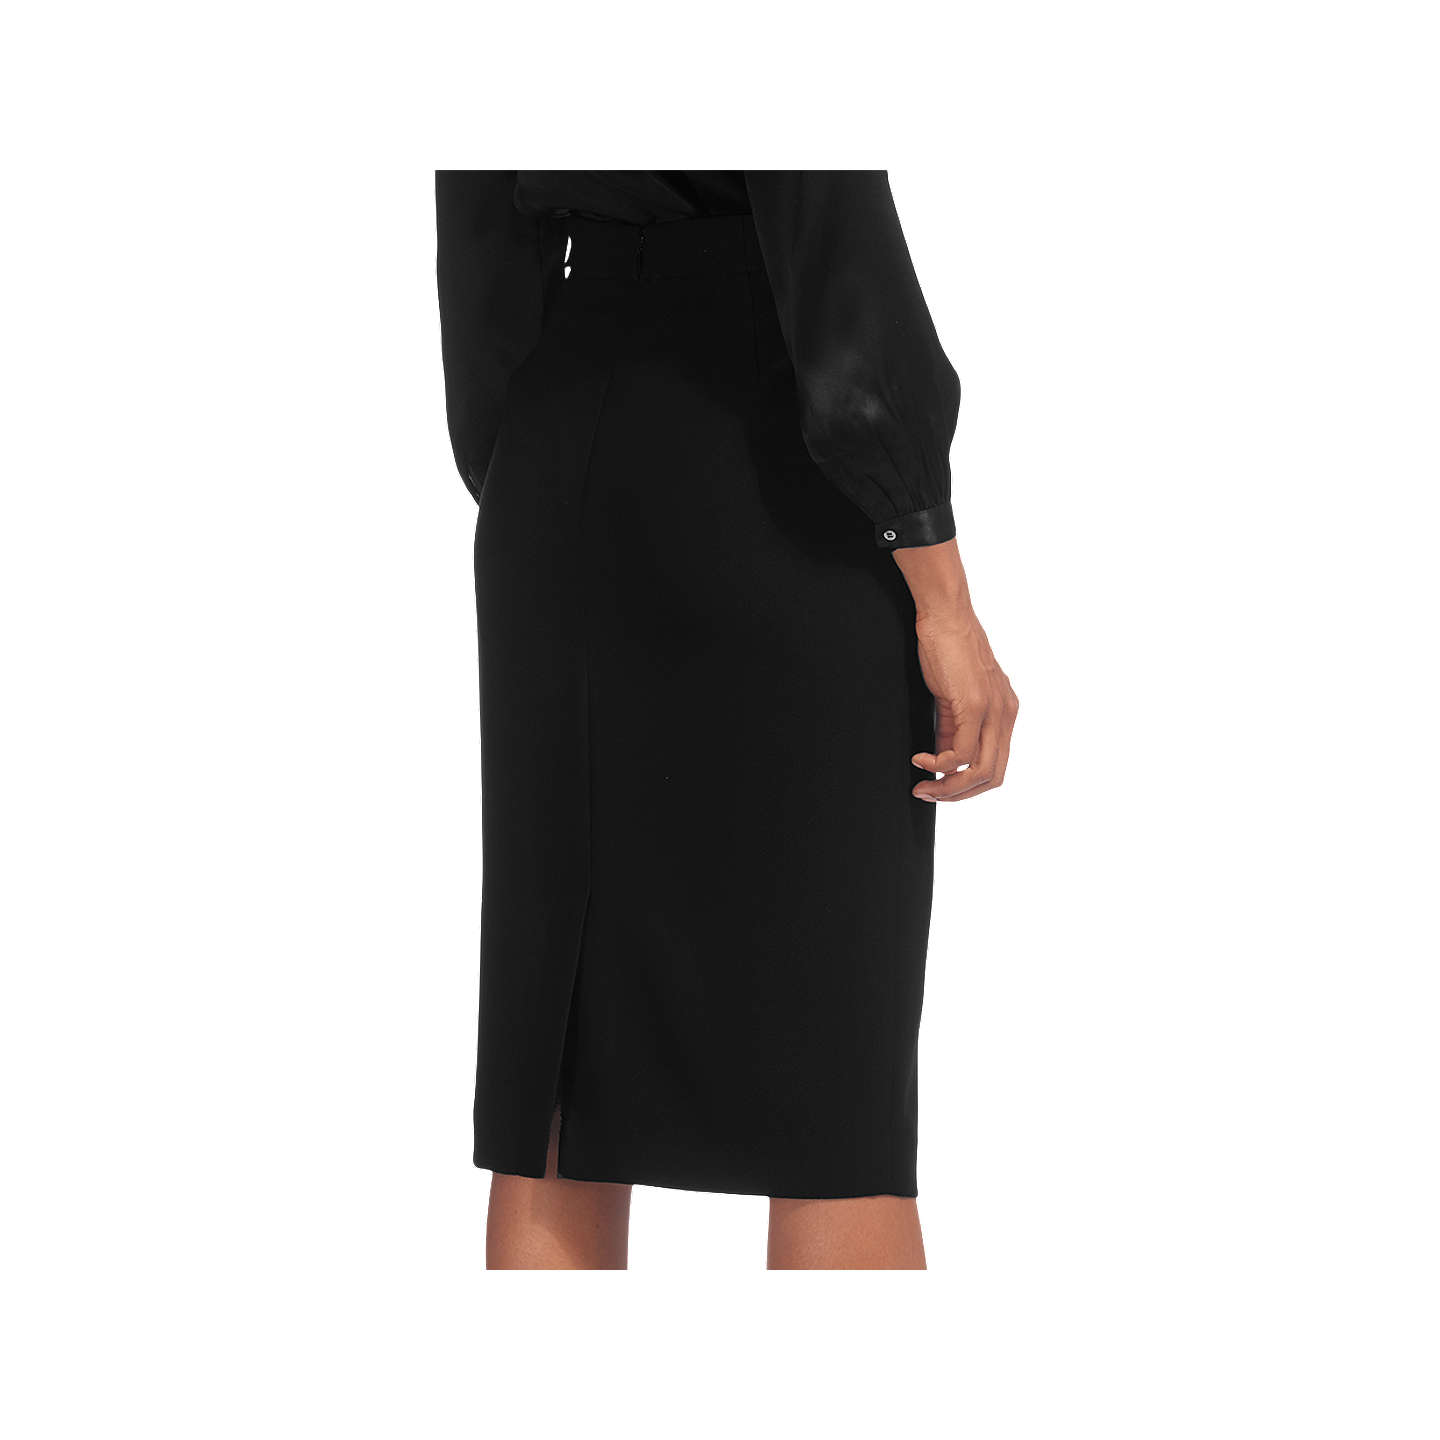 BuyWhistles Crepe Pencil Skirt, Black, 6 Online at johnlewis.com